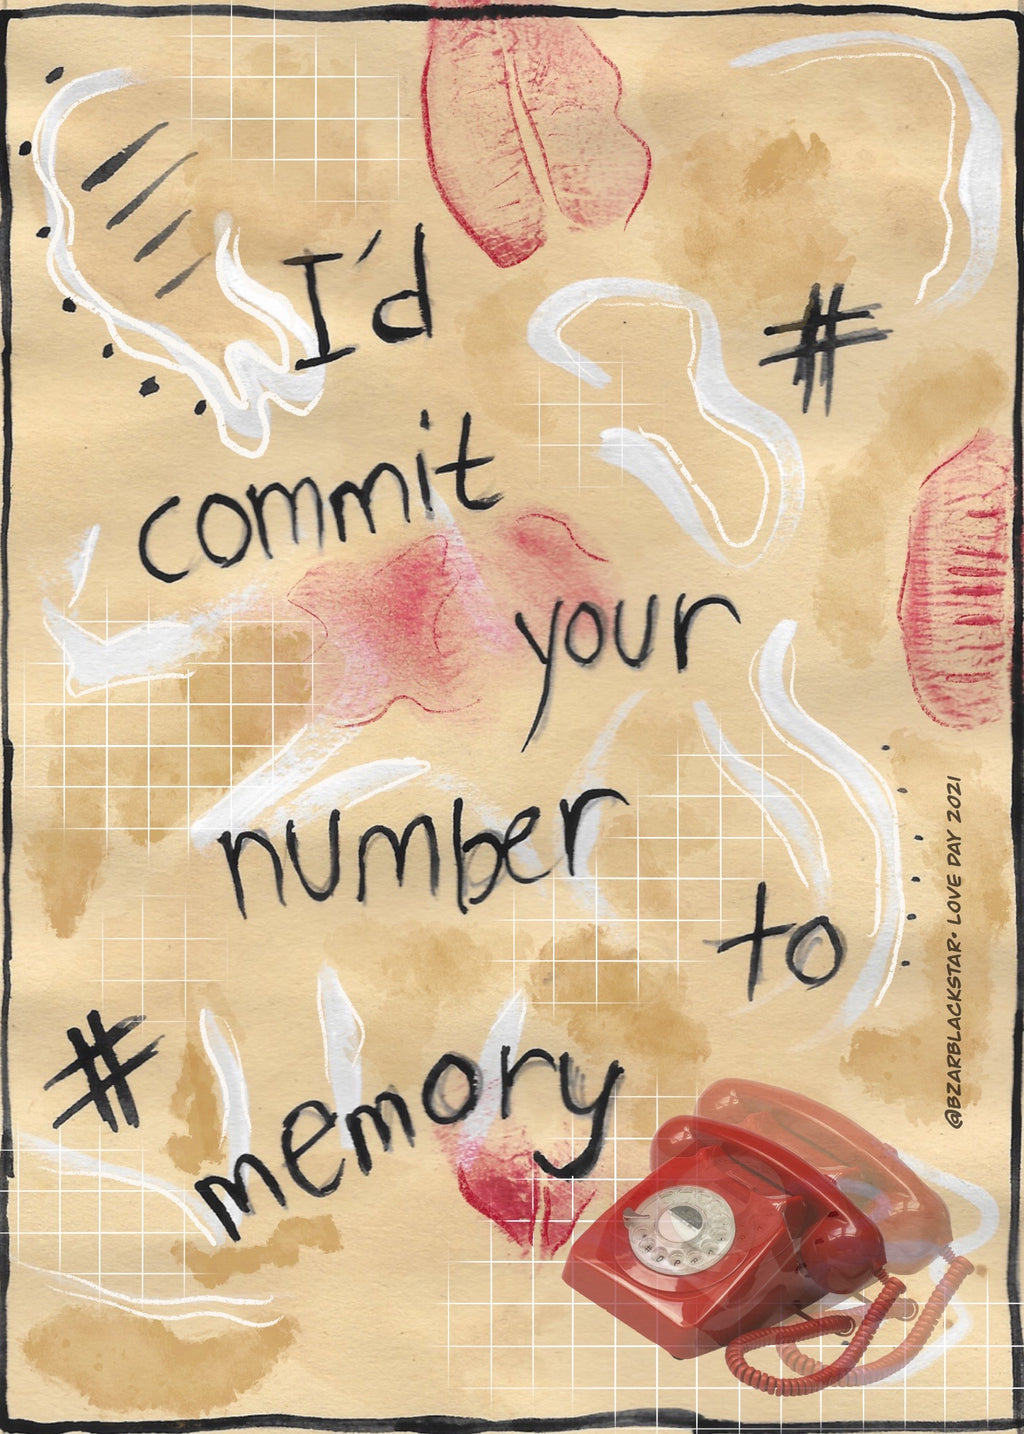 I'd Commit Your Number To Memory